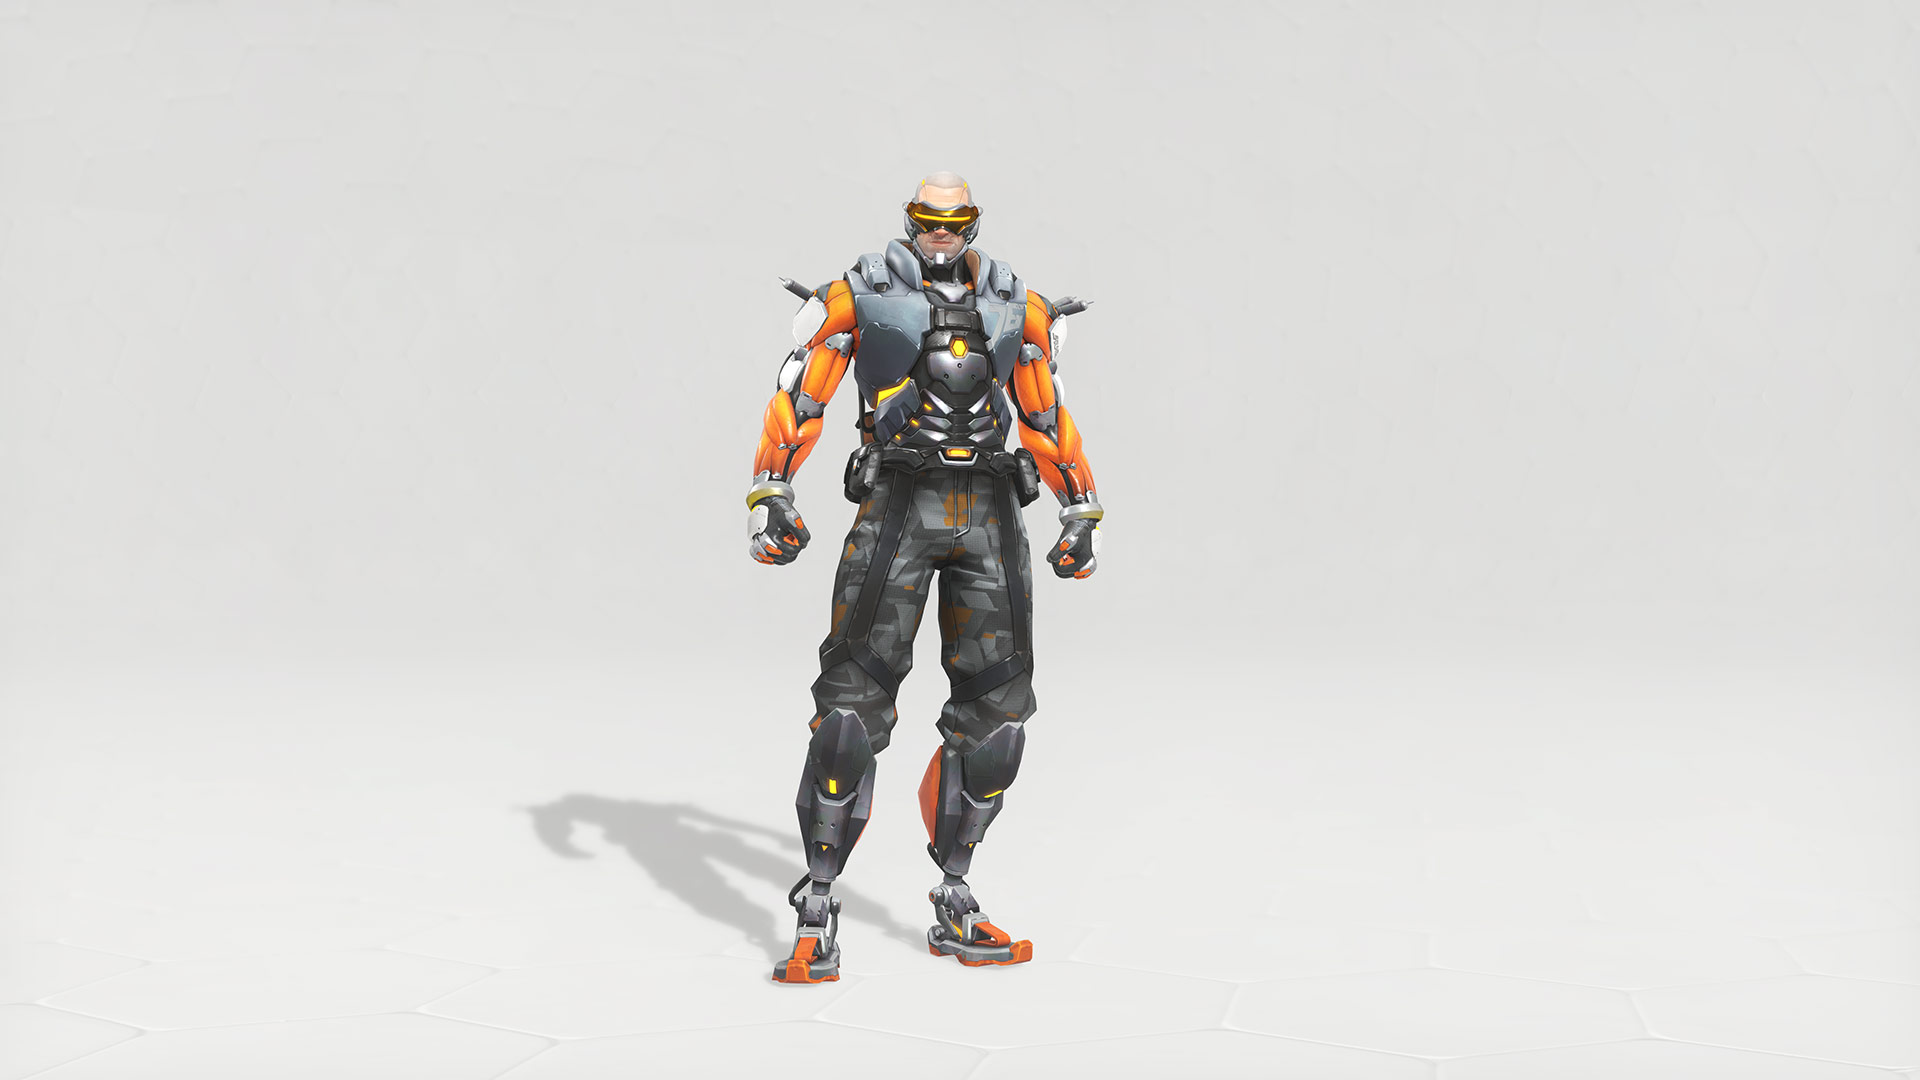 Overwatch Anniversary Event skins: check out images for each